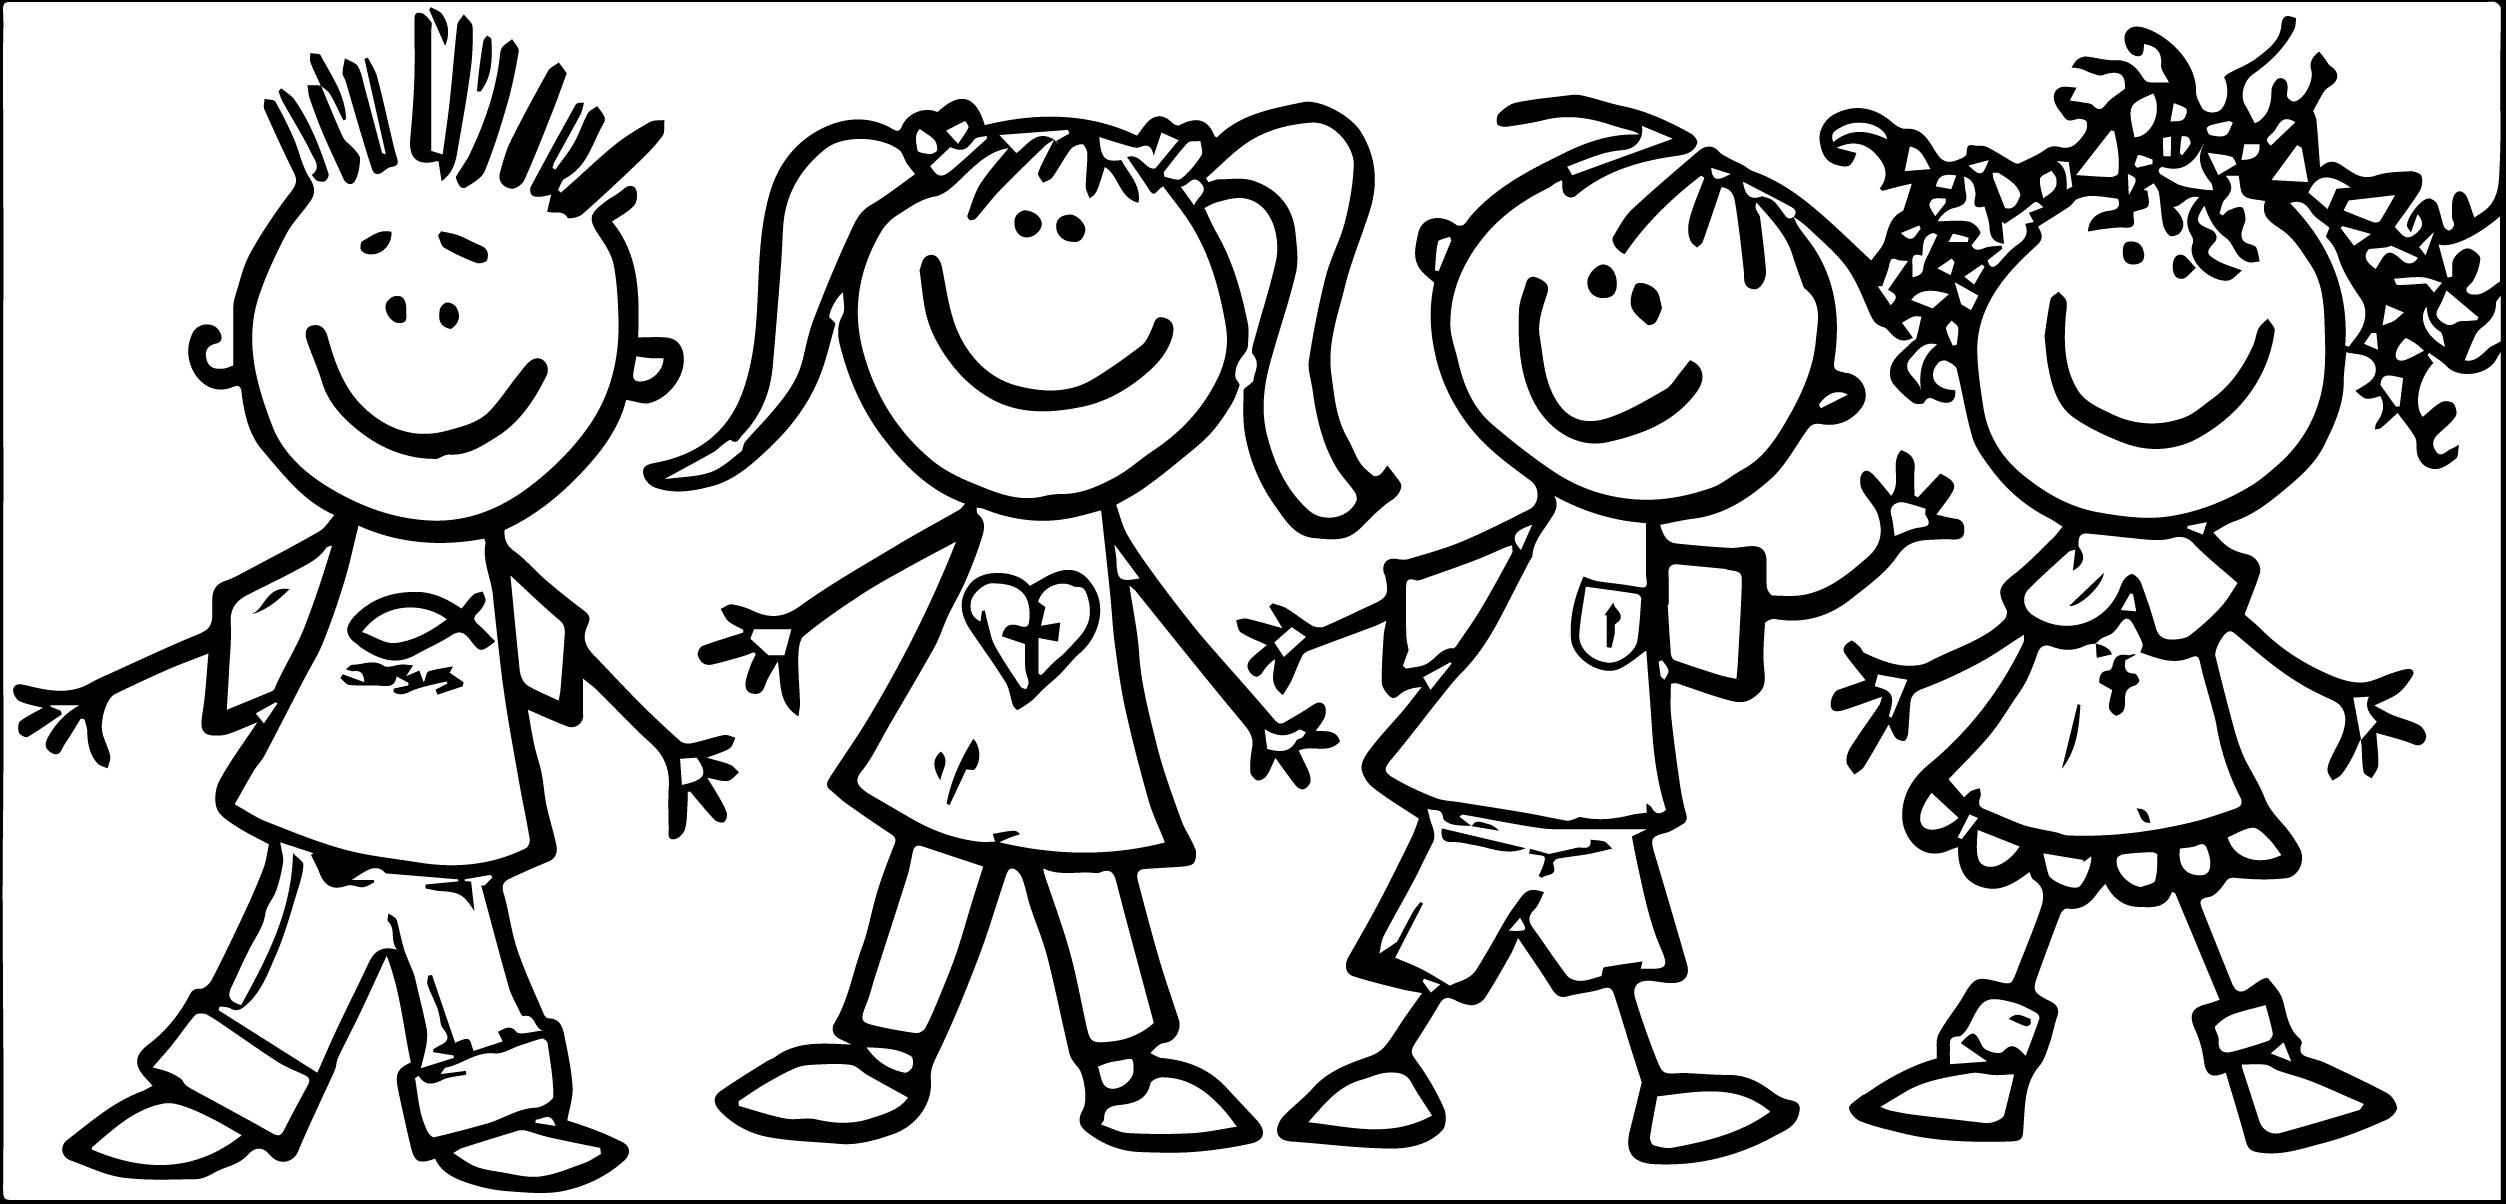 Free clipart black and white for boys. Preschool clip art kids